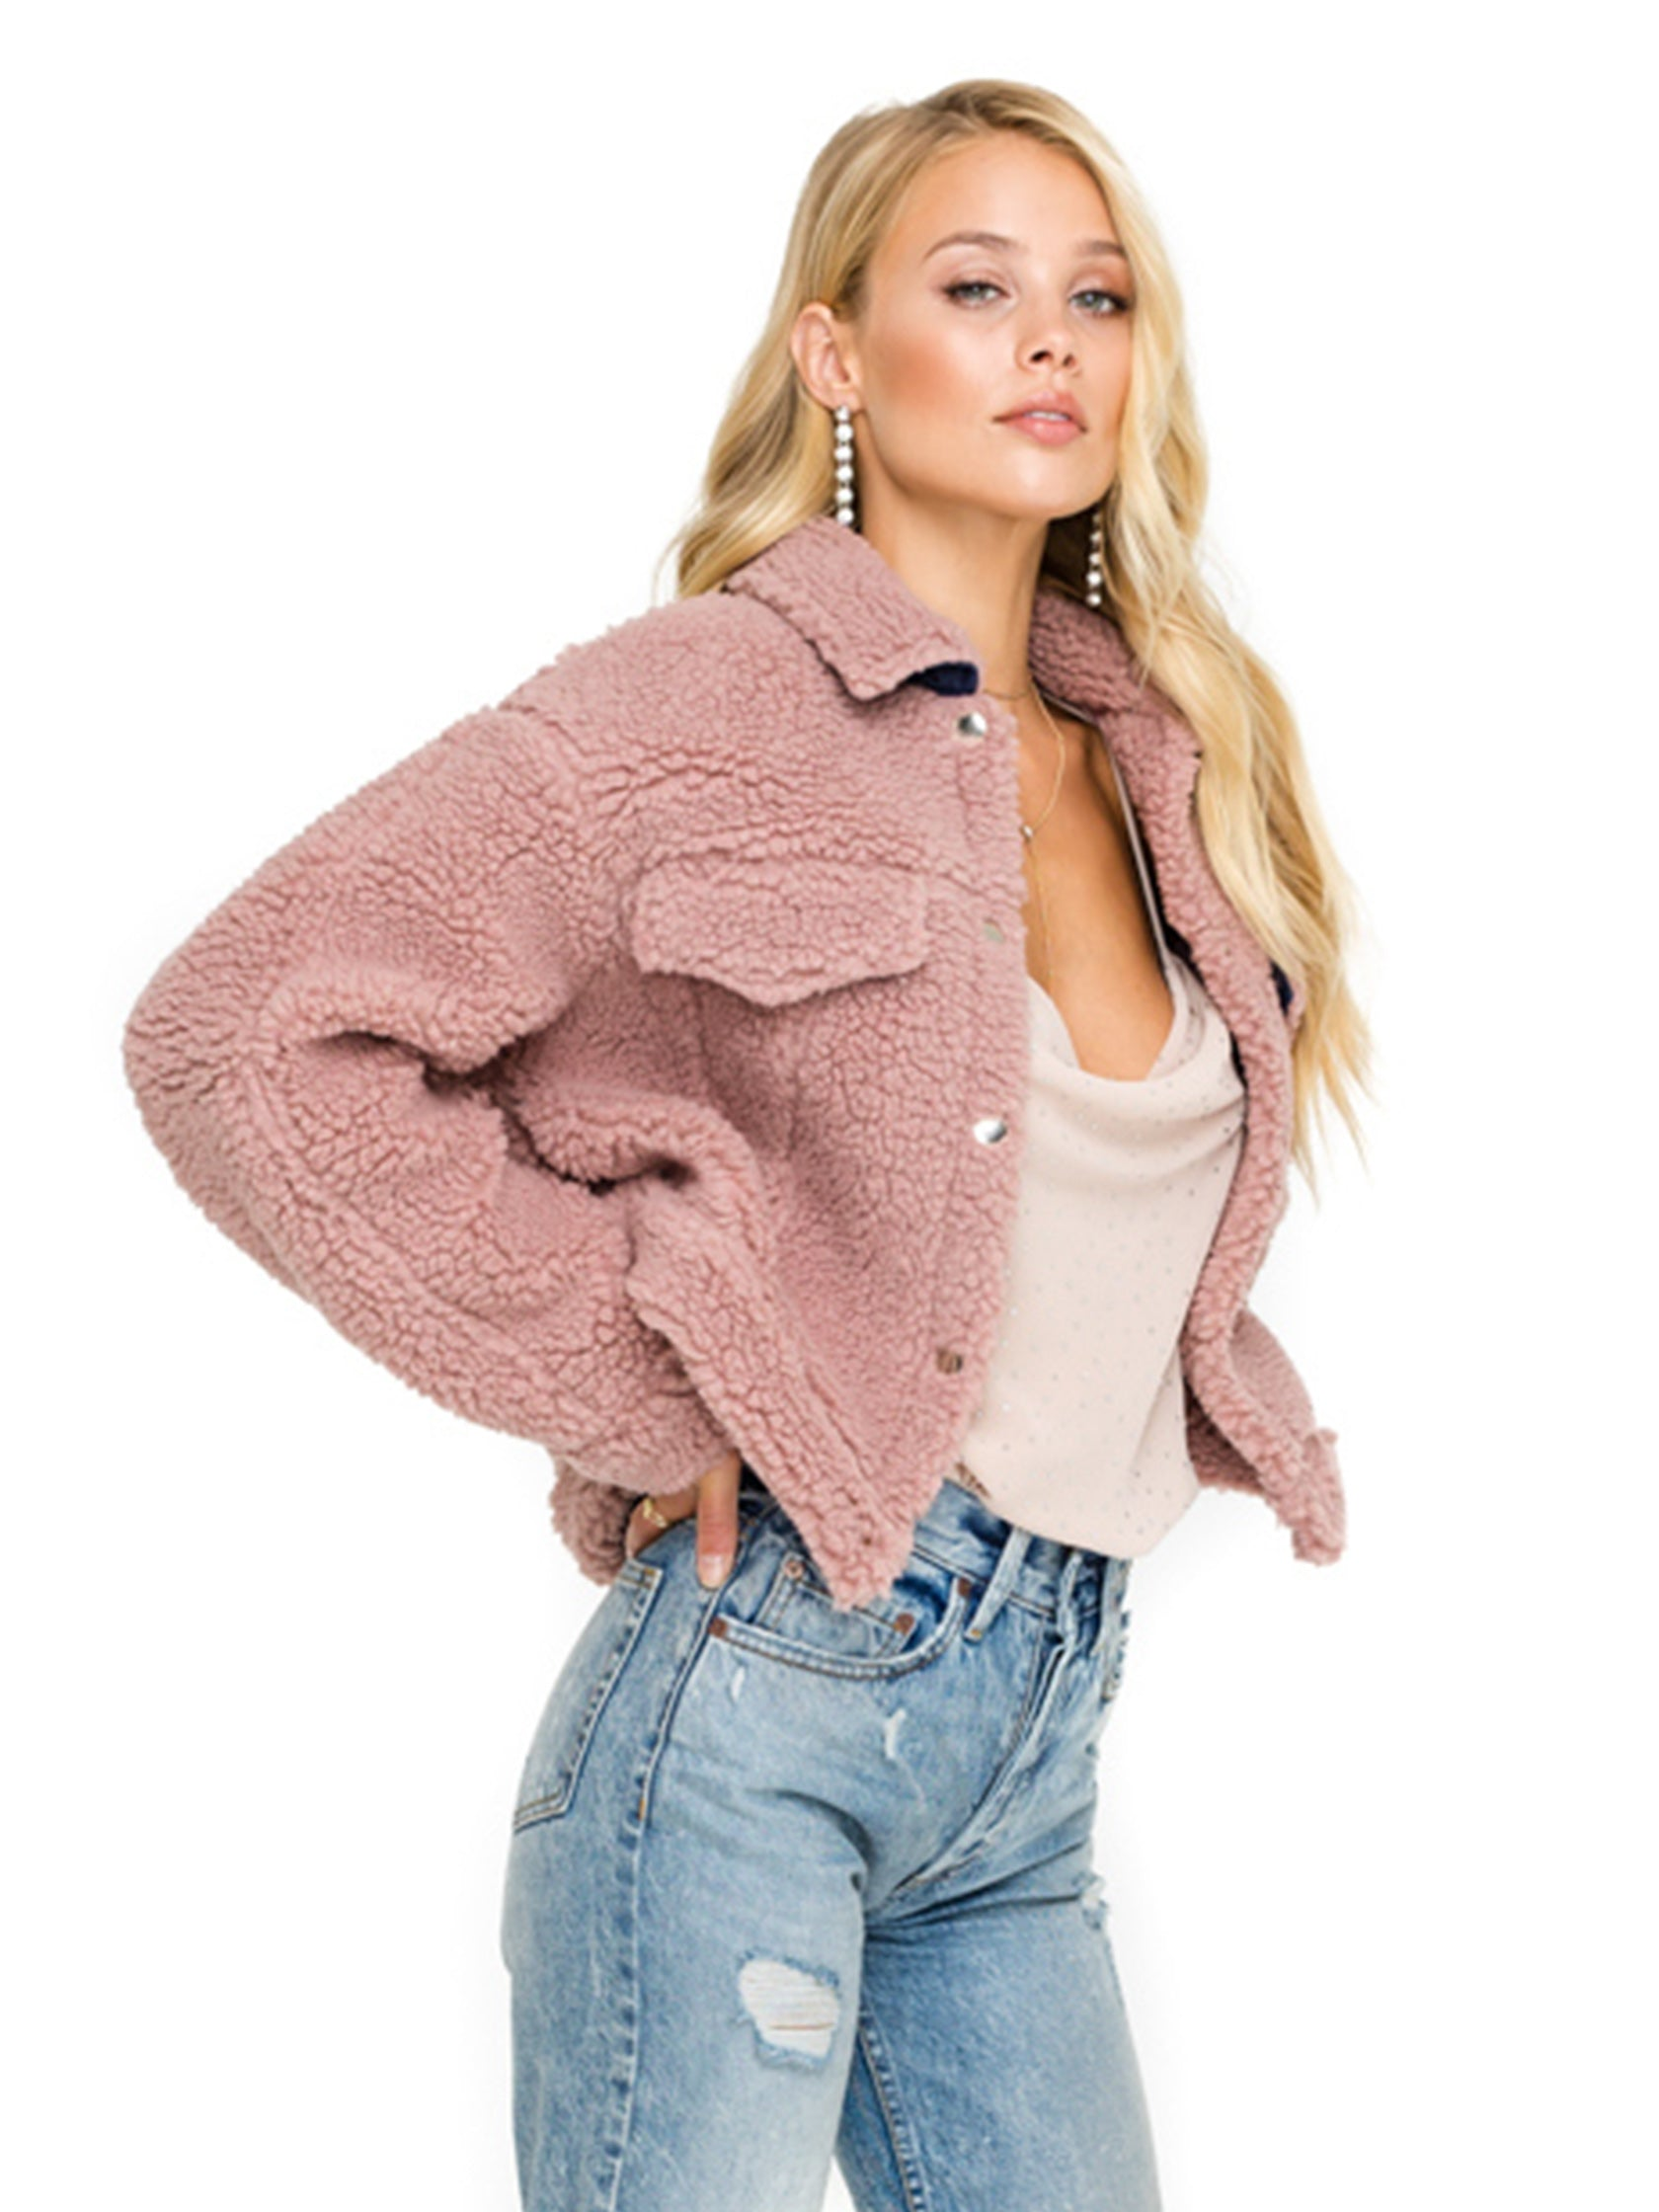 Women wearing a jacket rental from ASTR called Faux Shearling Trucker Jacket